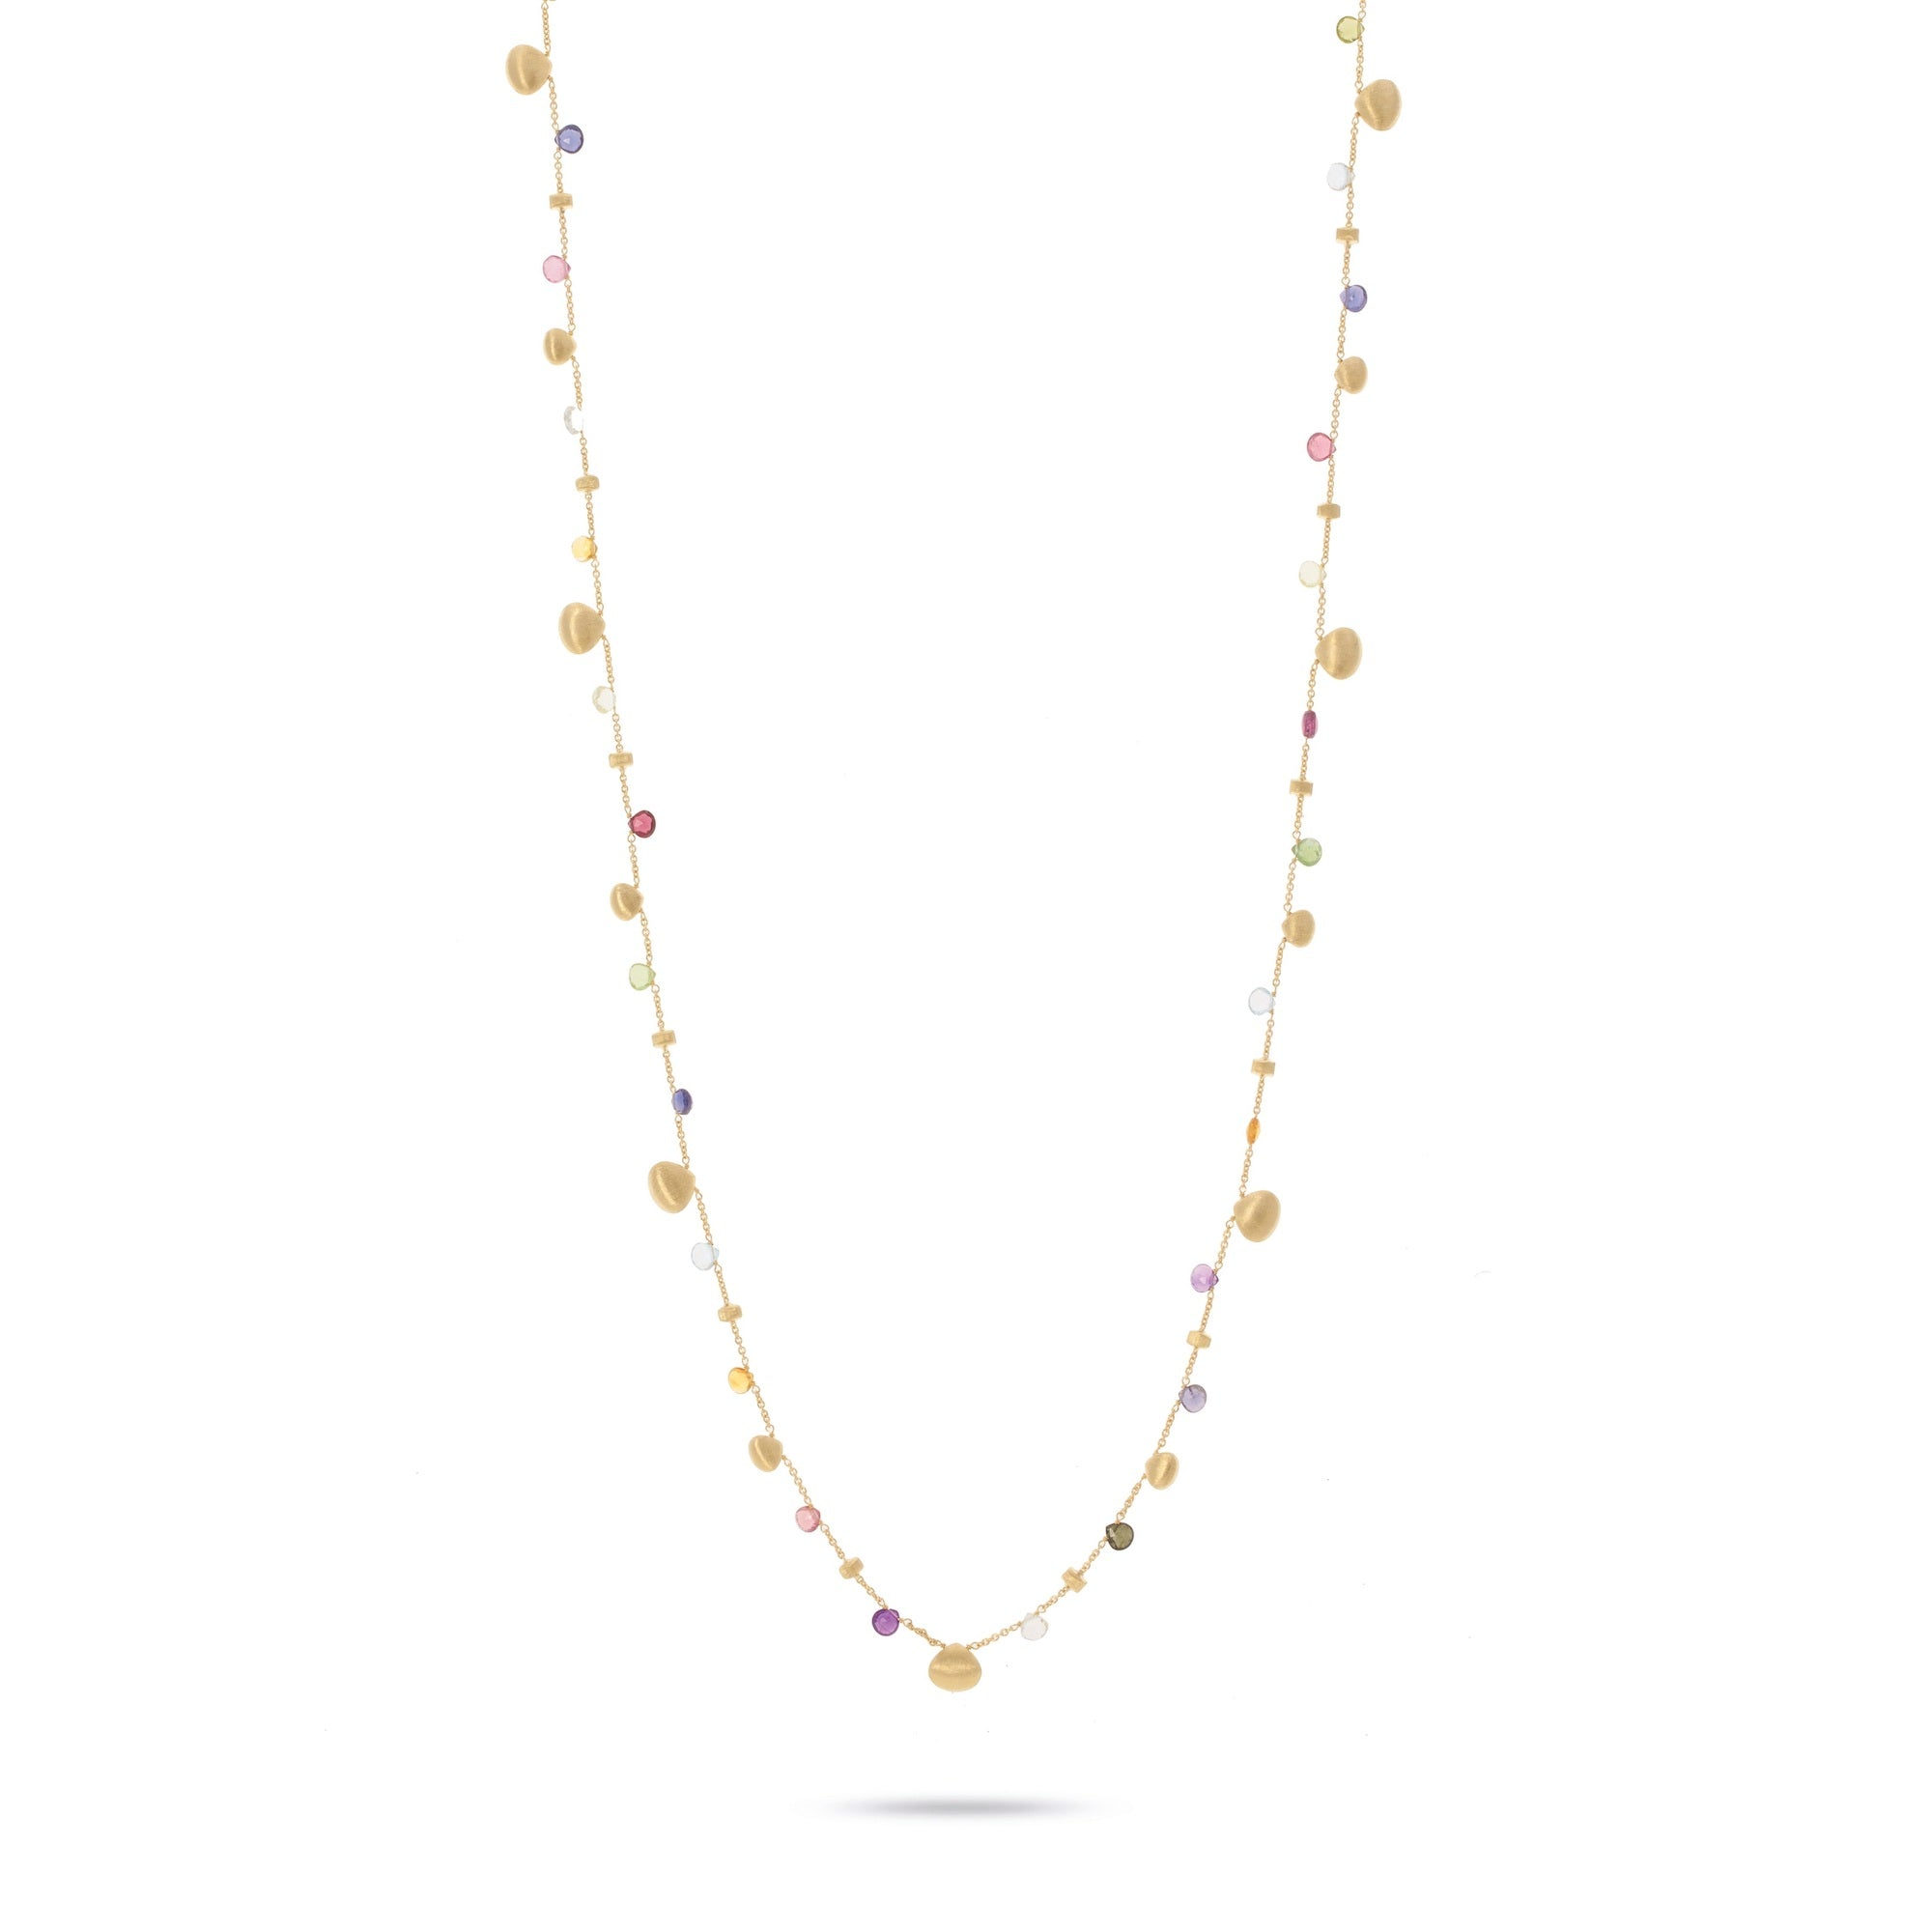 18K Yellow Gold and Mixed Gemstone Long Necklace